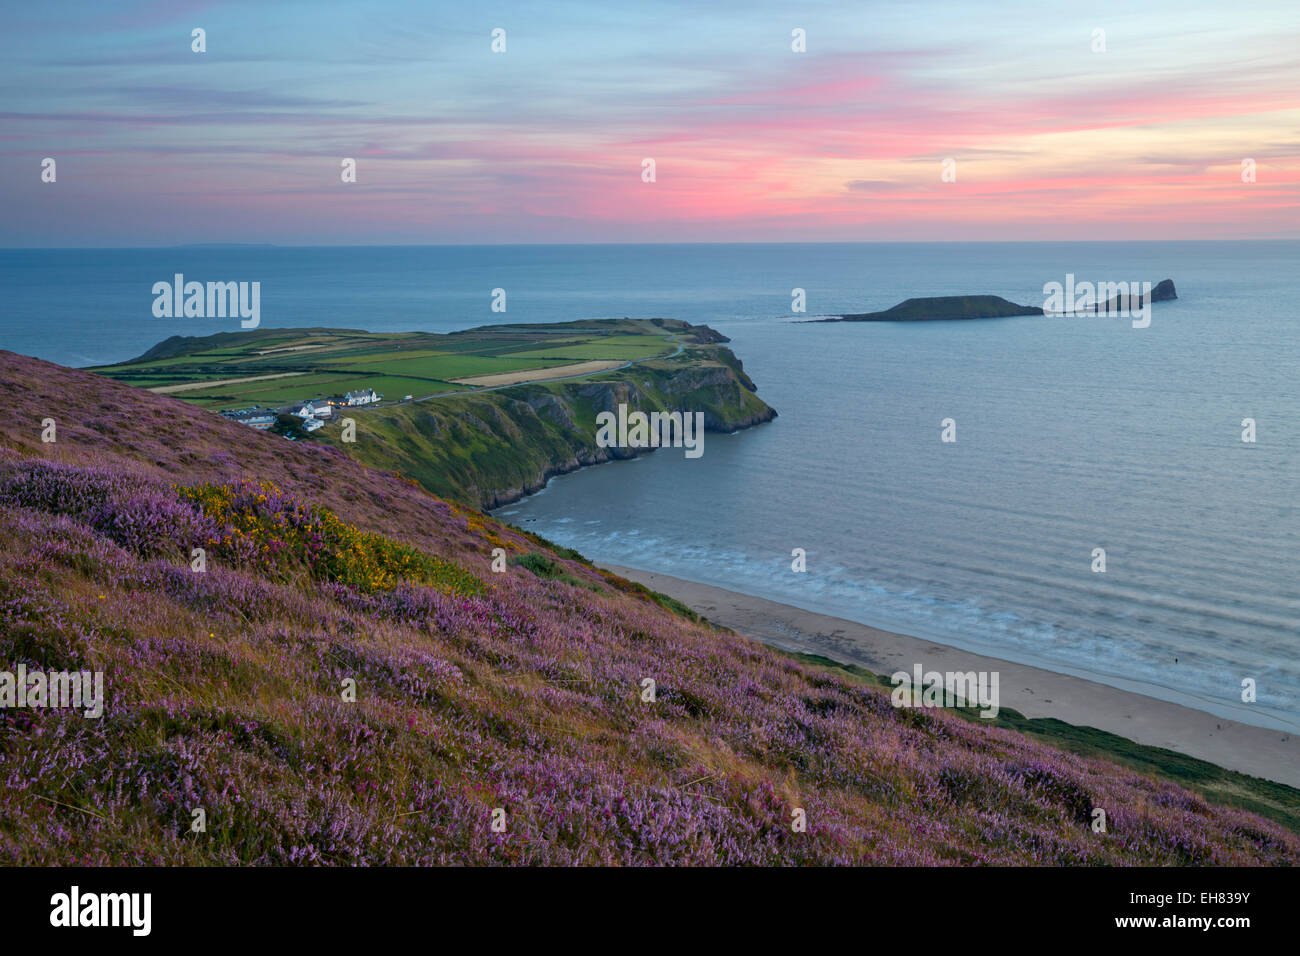 Worms Head and Rhossili Bay with Heather-clad cliffs, Gower Peninsula, Swansea, West Glamorgan, Wales, United Kingdom, - Stock Image